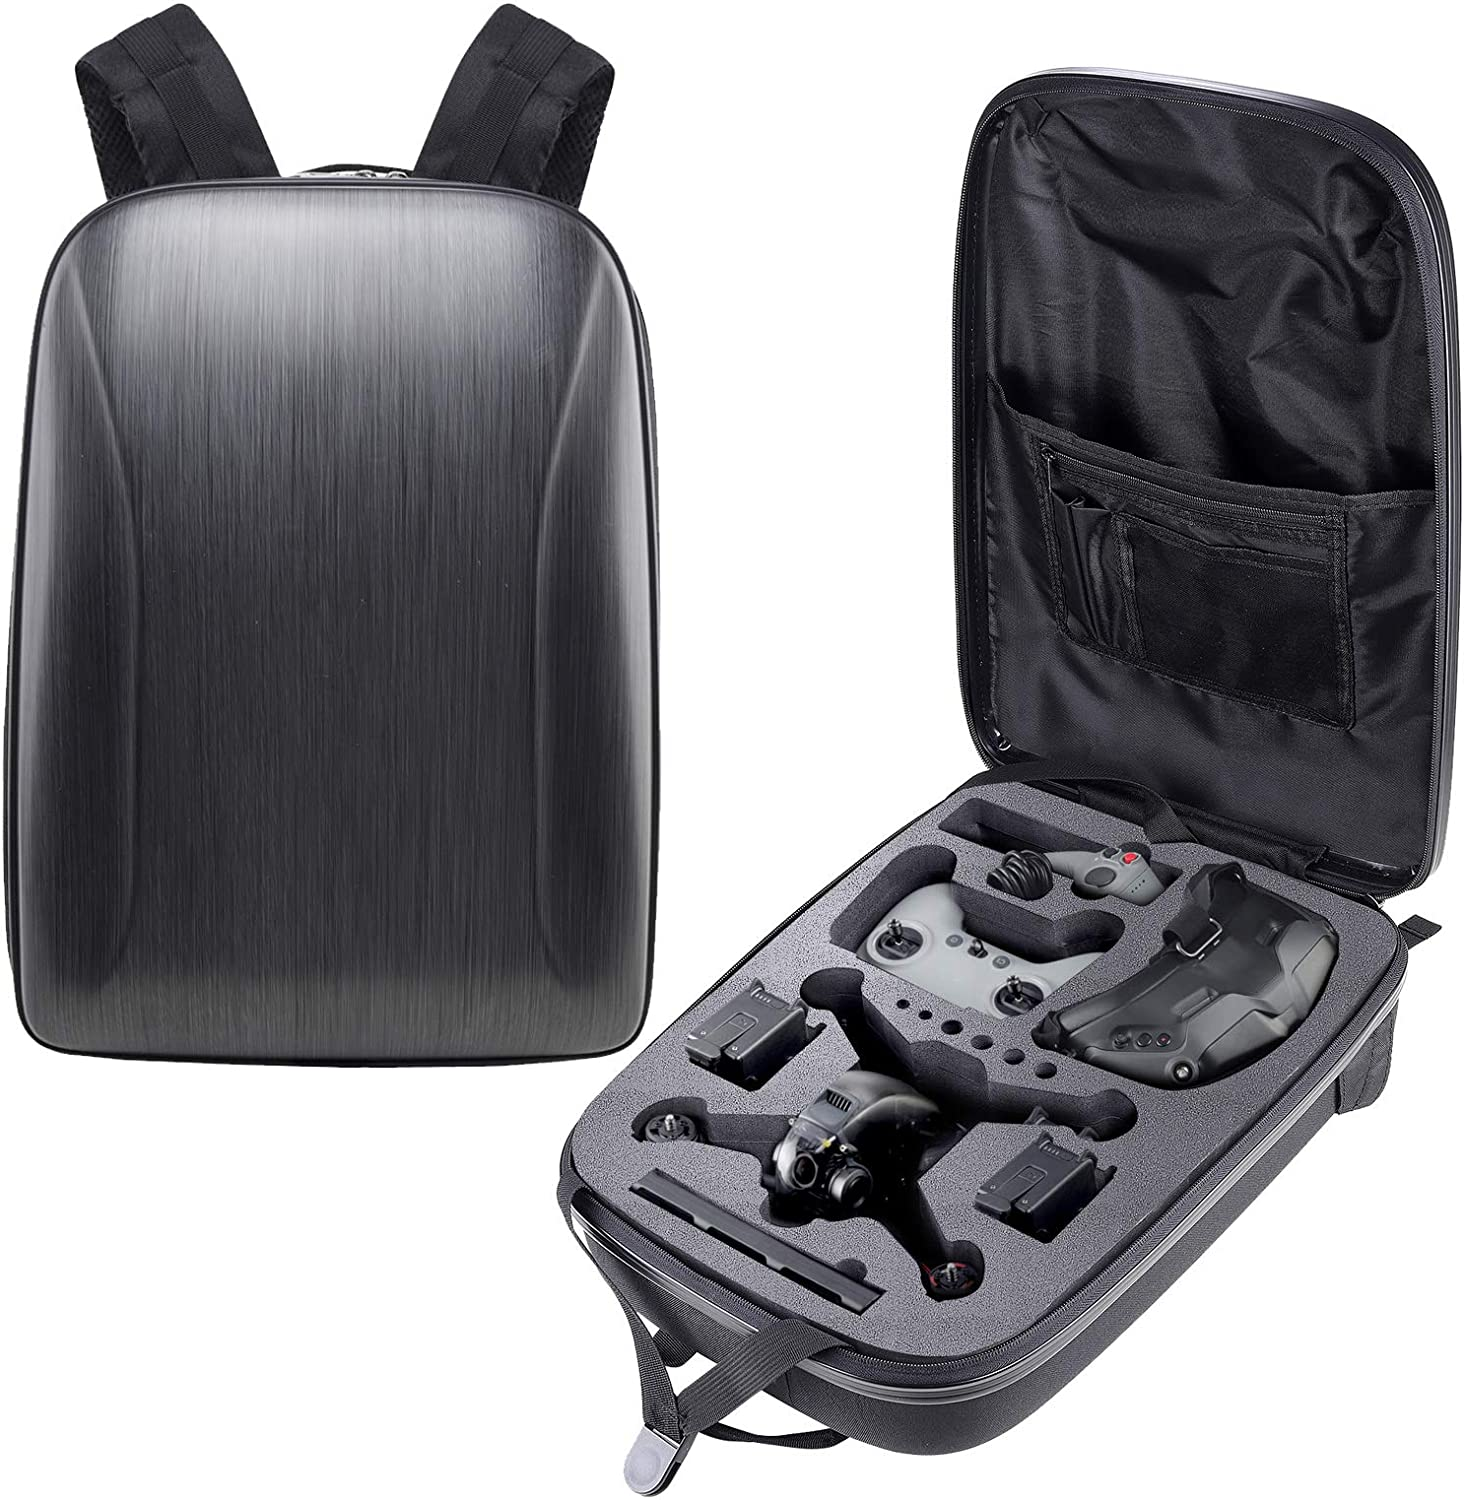 Portable Hard Case for Quality inspection Max 71% OFF DJI Backpack Waterproof FPV Combo